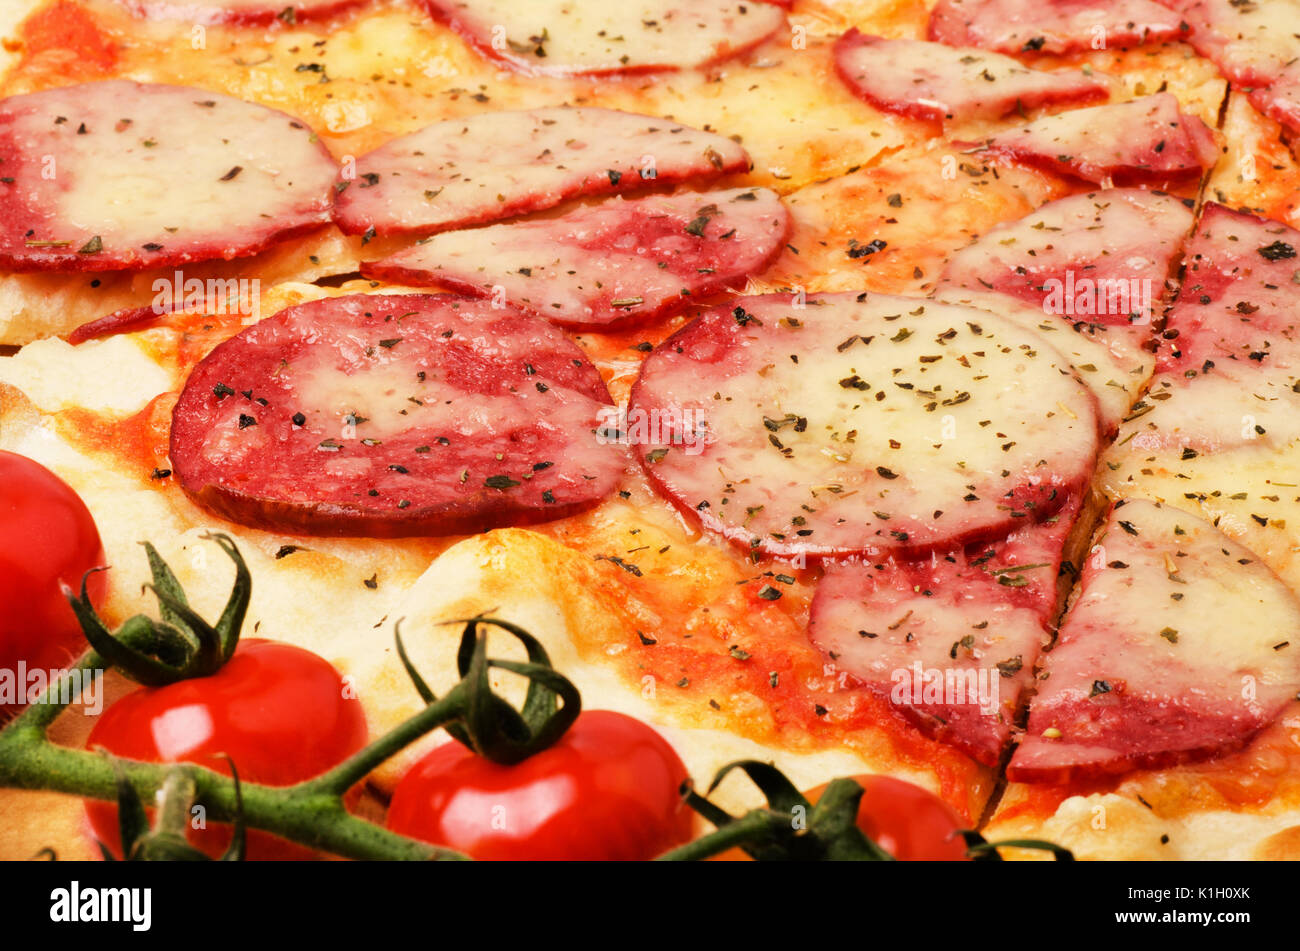 Tasty salami pizza with cherries ingredient close-up - Stock Image